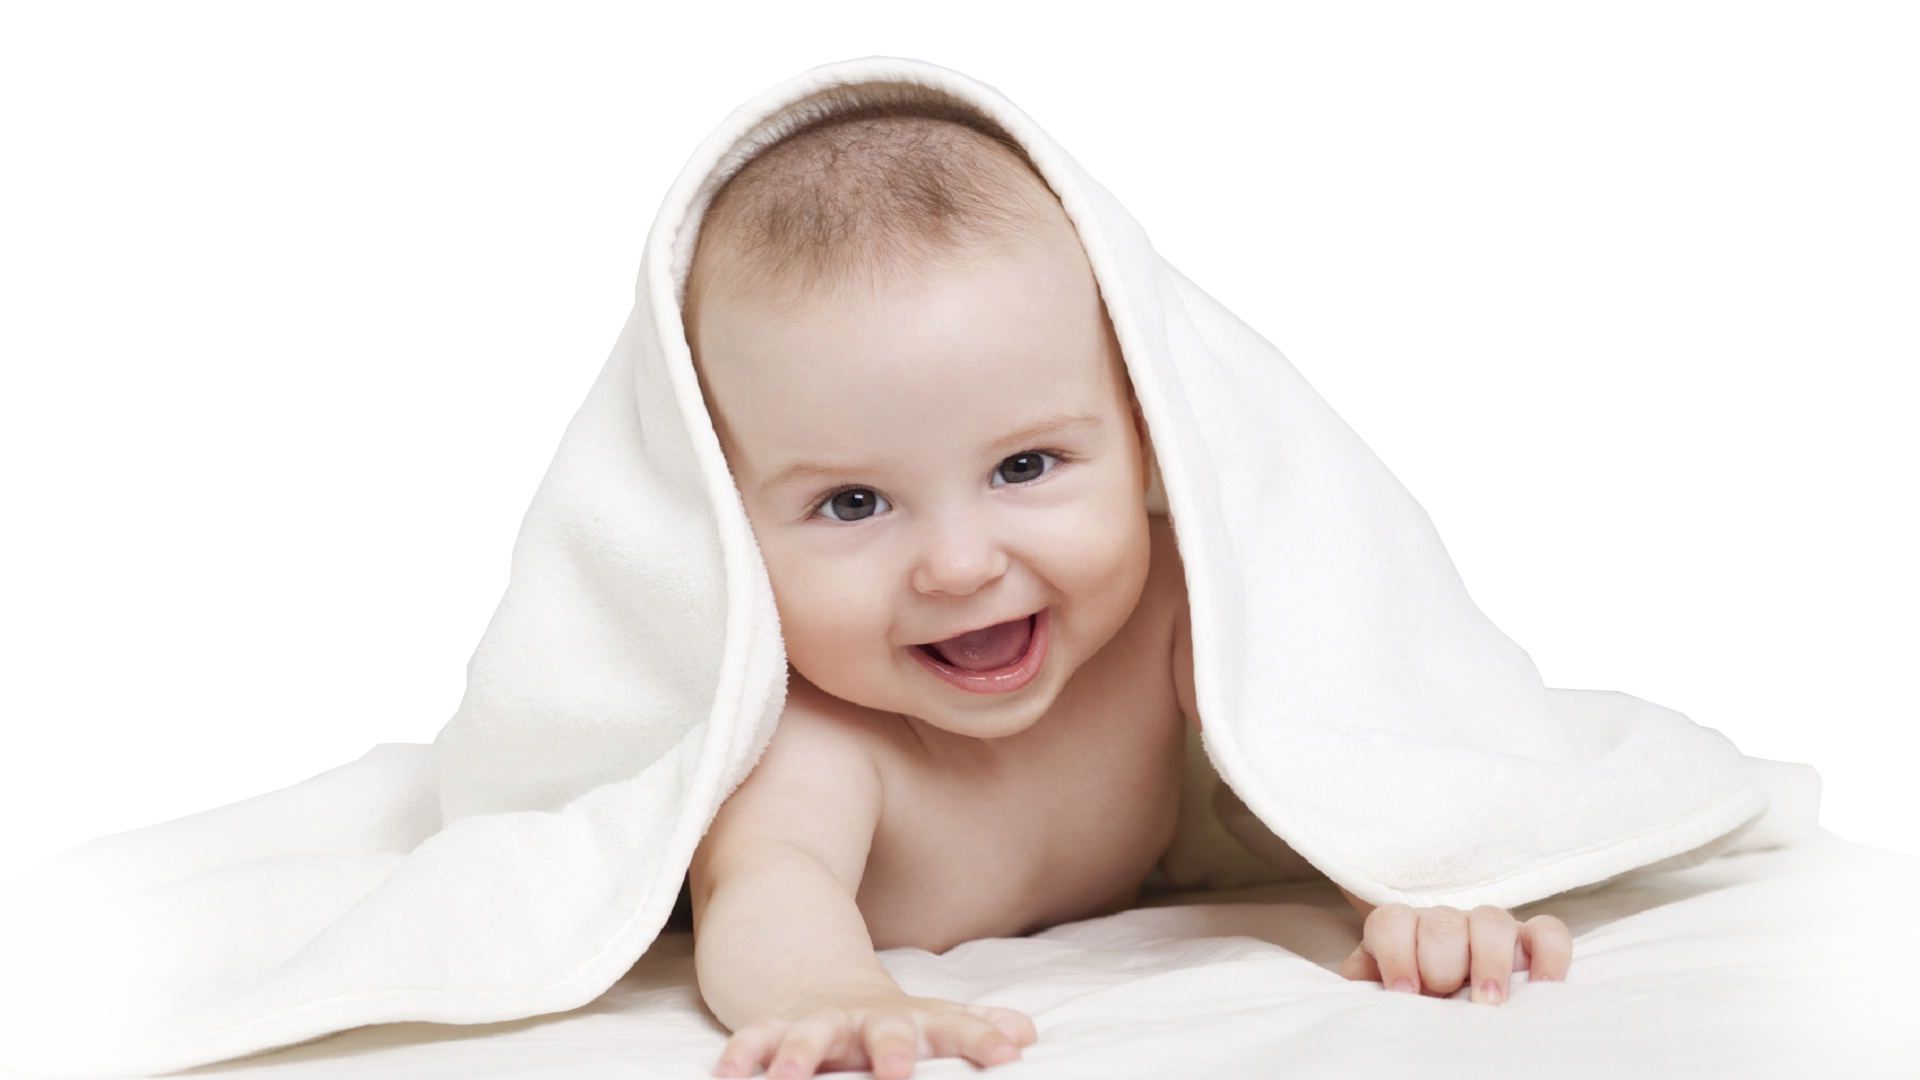 Baby White Background Image - PNG HD Baby